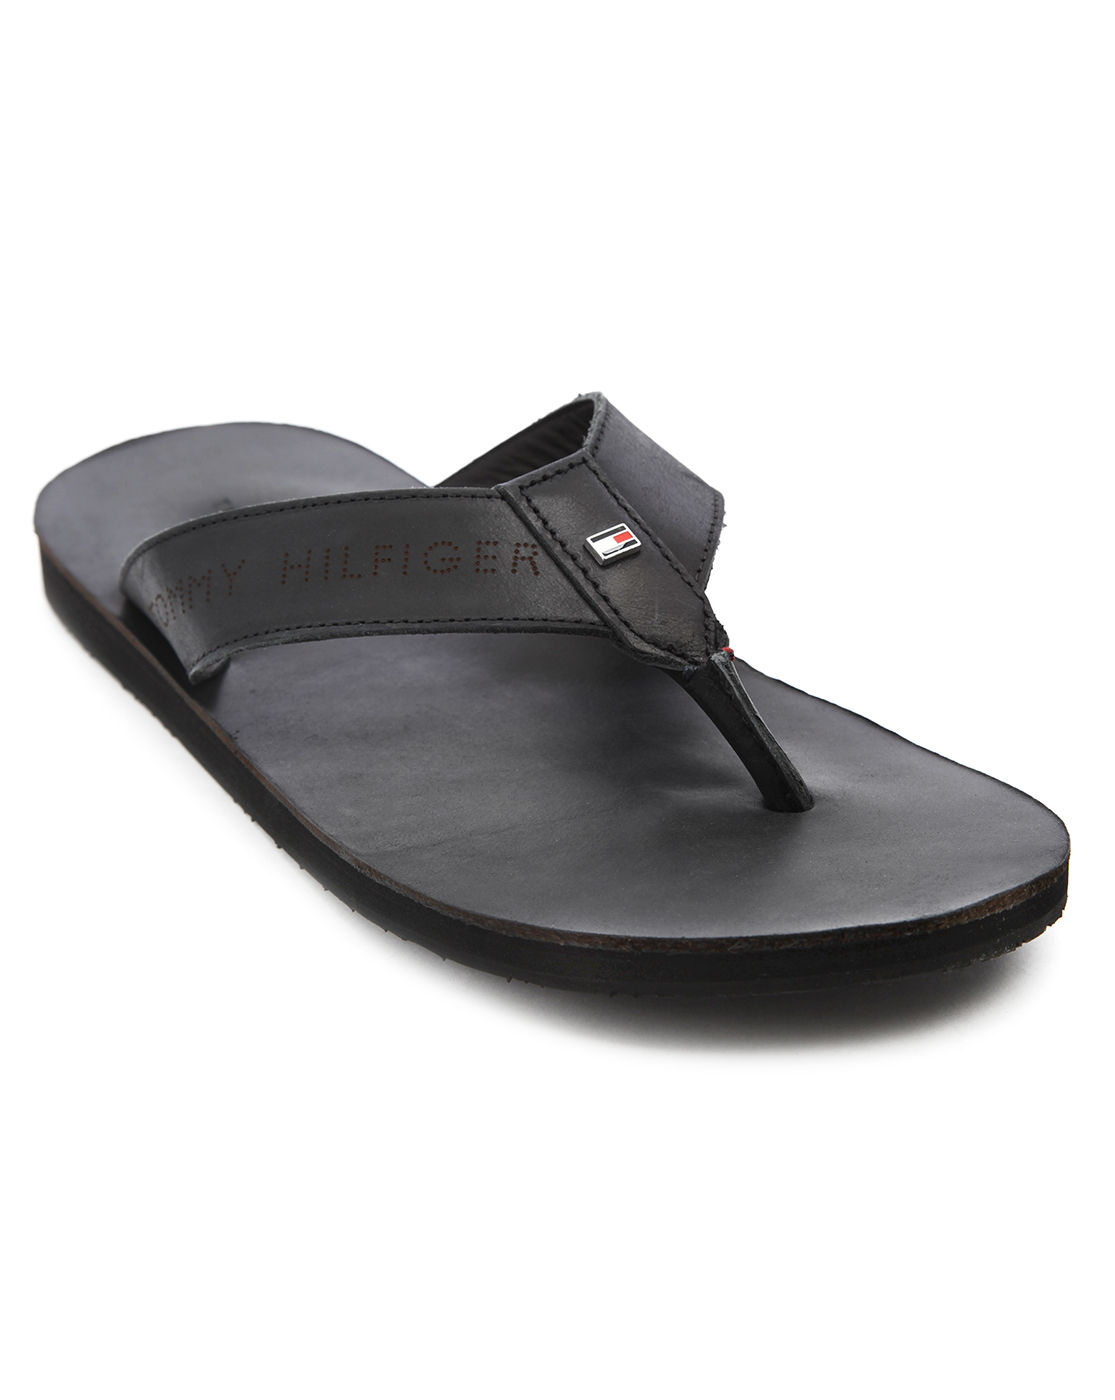 tommy hilfiger timsbury black leather flipflops in black for men. Black Bedroom Furniture Sets. Home Design Ideas